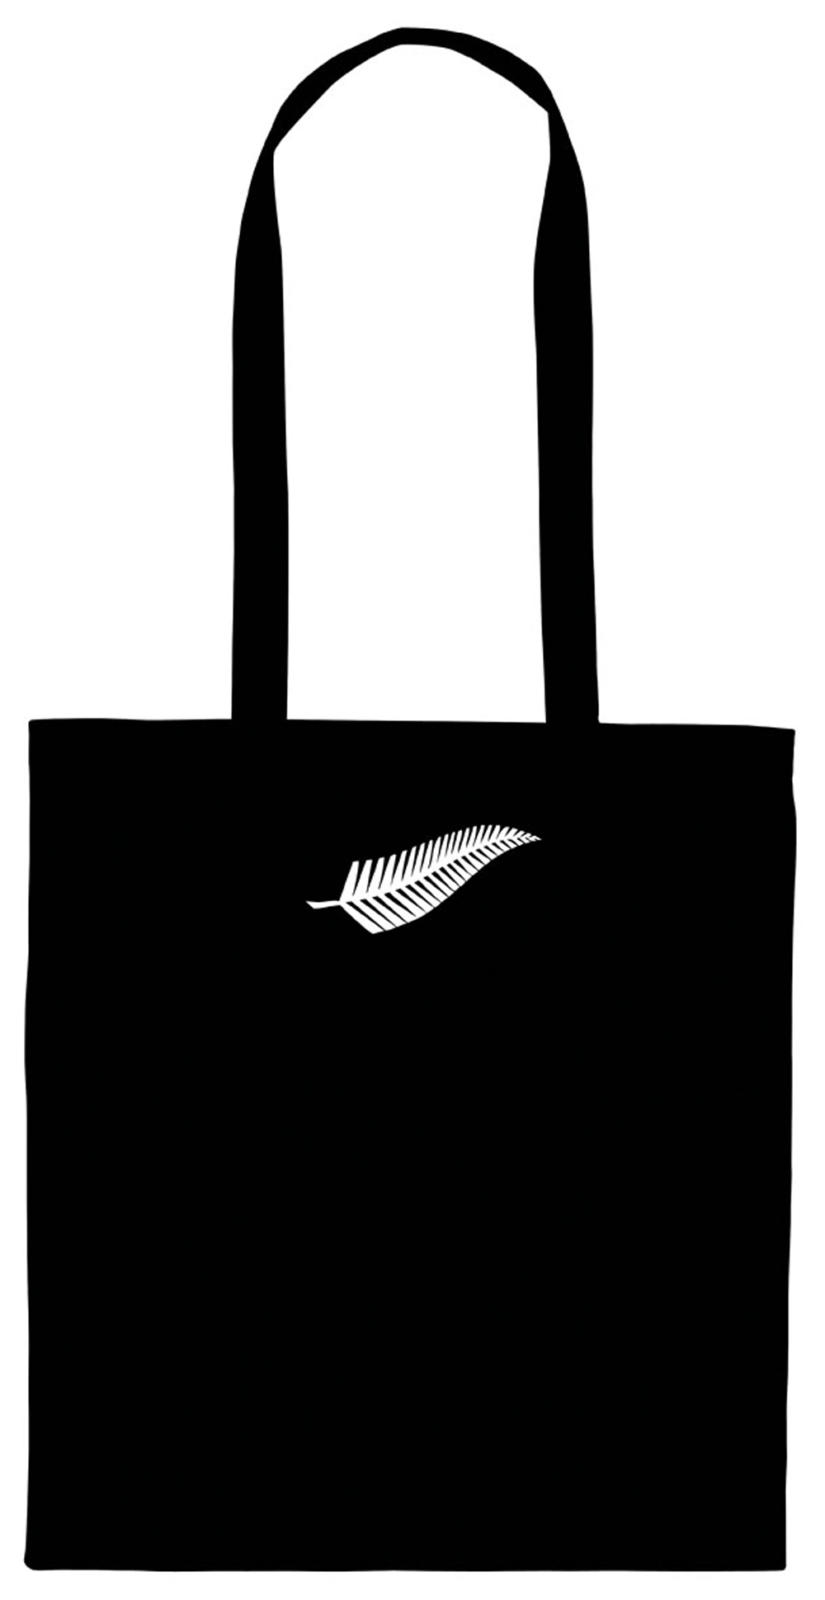 Silver Fern Calico Bag Long Handles